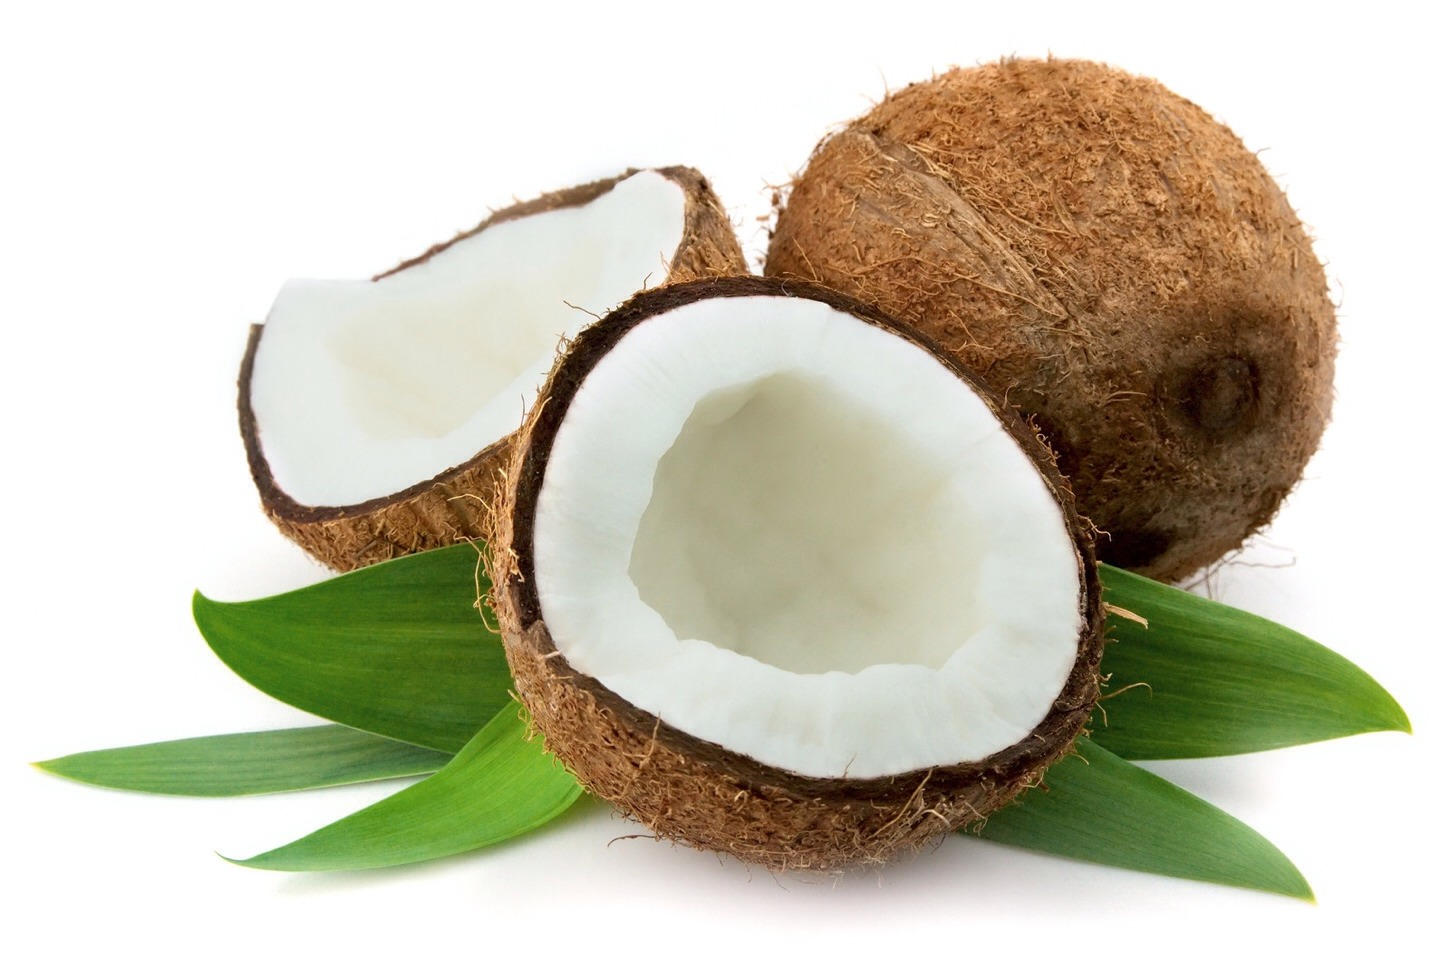 Coconut oil helps damaged hair and also helps your hair grow longer faster ;)